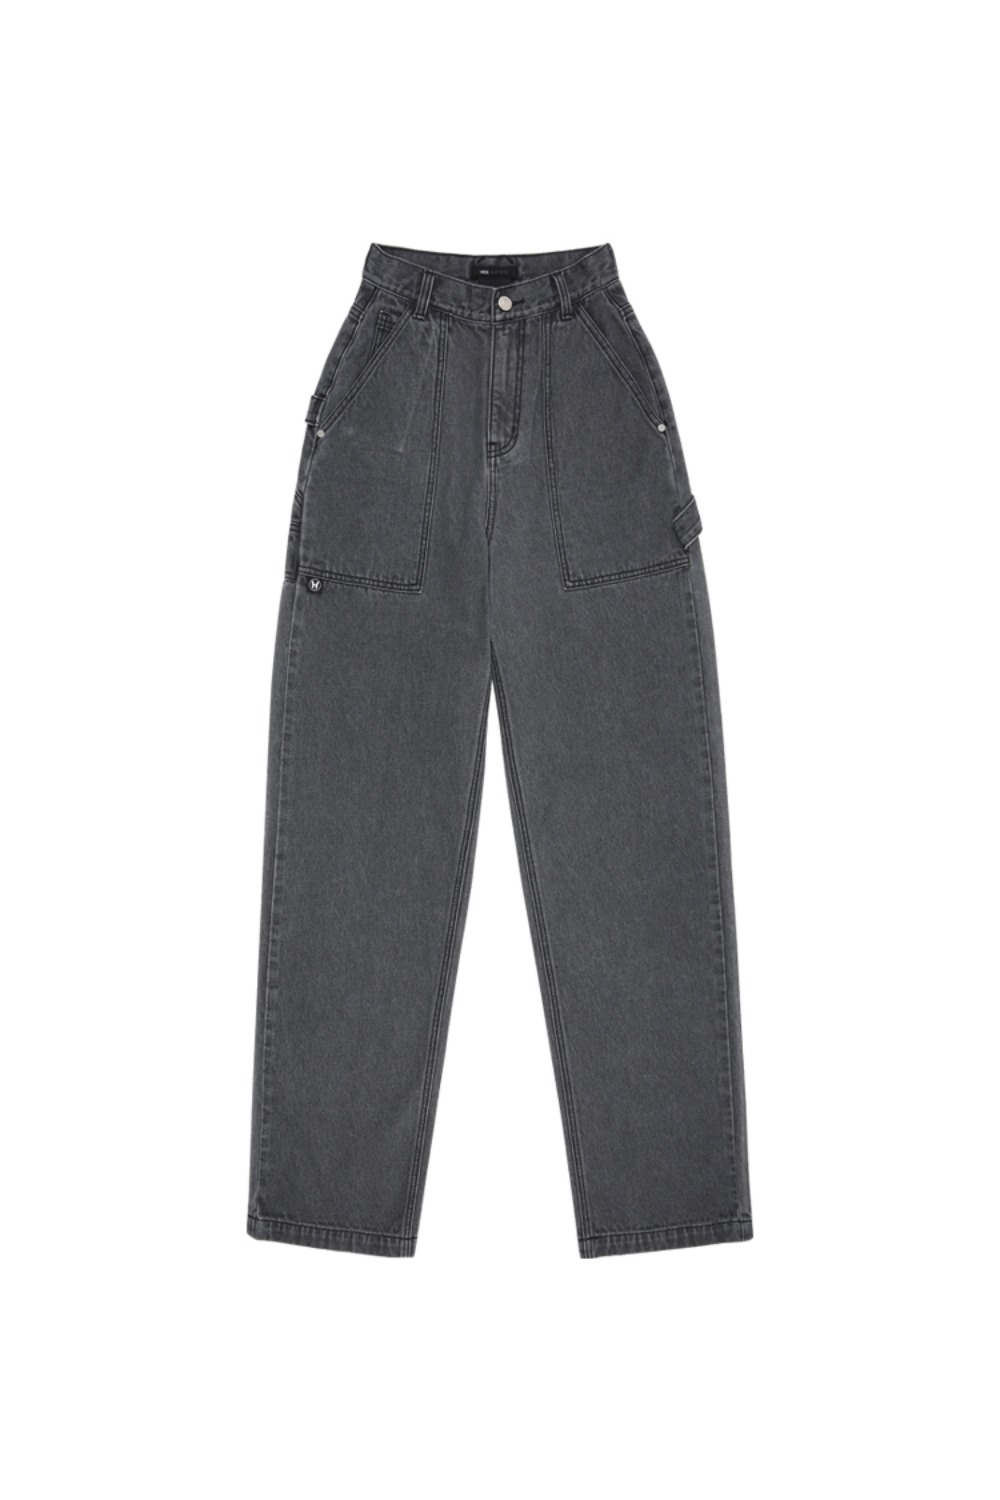 HIDE Out Pocket Denim Pants GREY